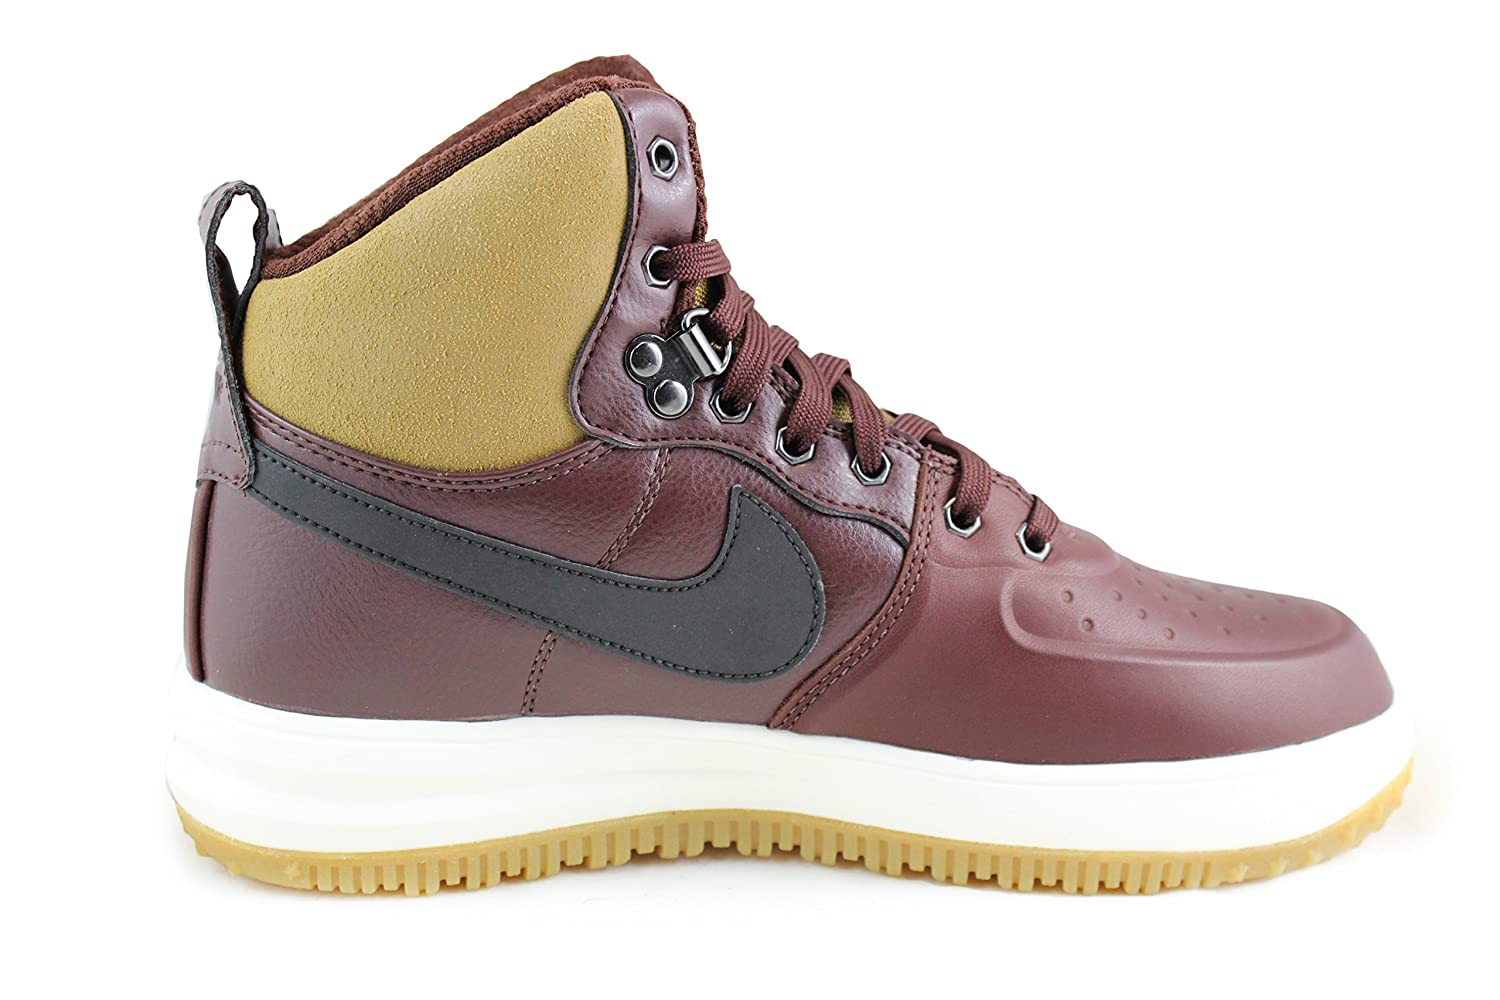 brand new 22640 7aded Amazon.com   Nike Lunar Force 1 Sneakerboot Boots GS Barkroot Brown Black  Size 5.0 Youth   Boots